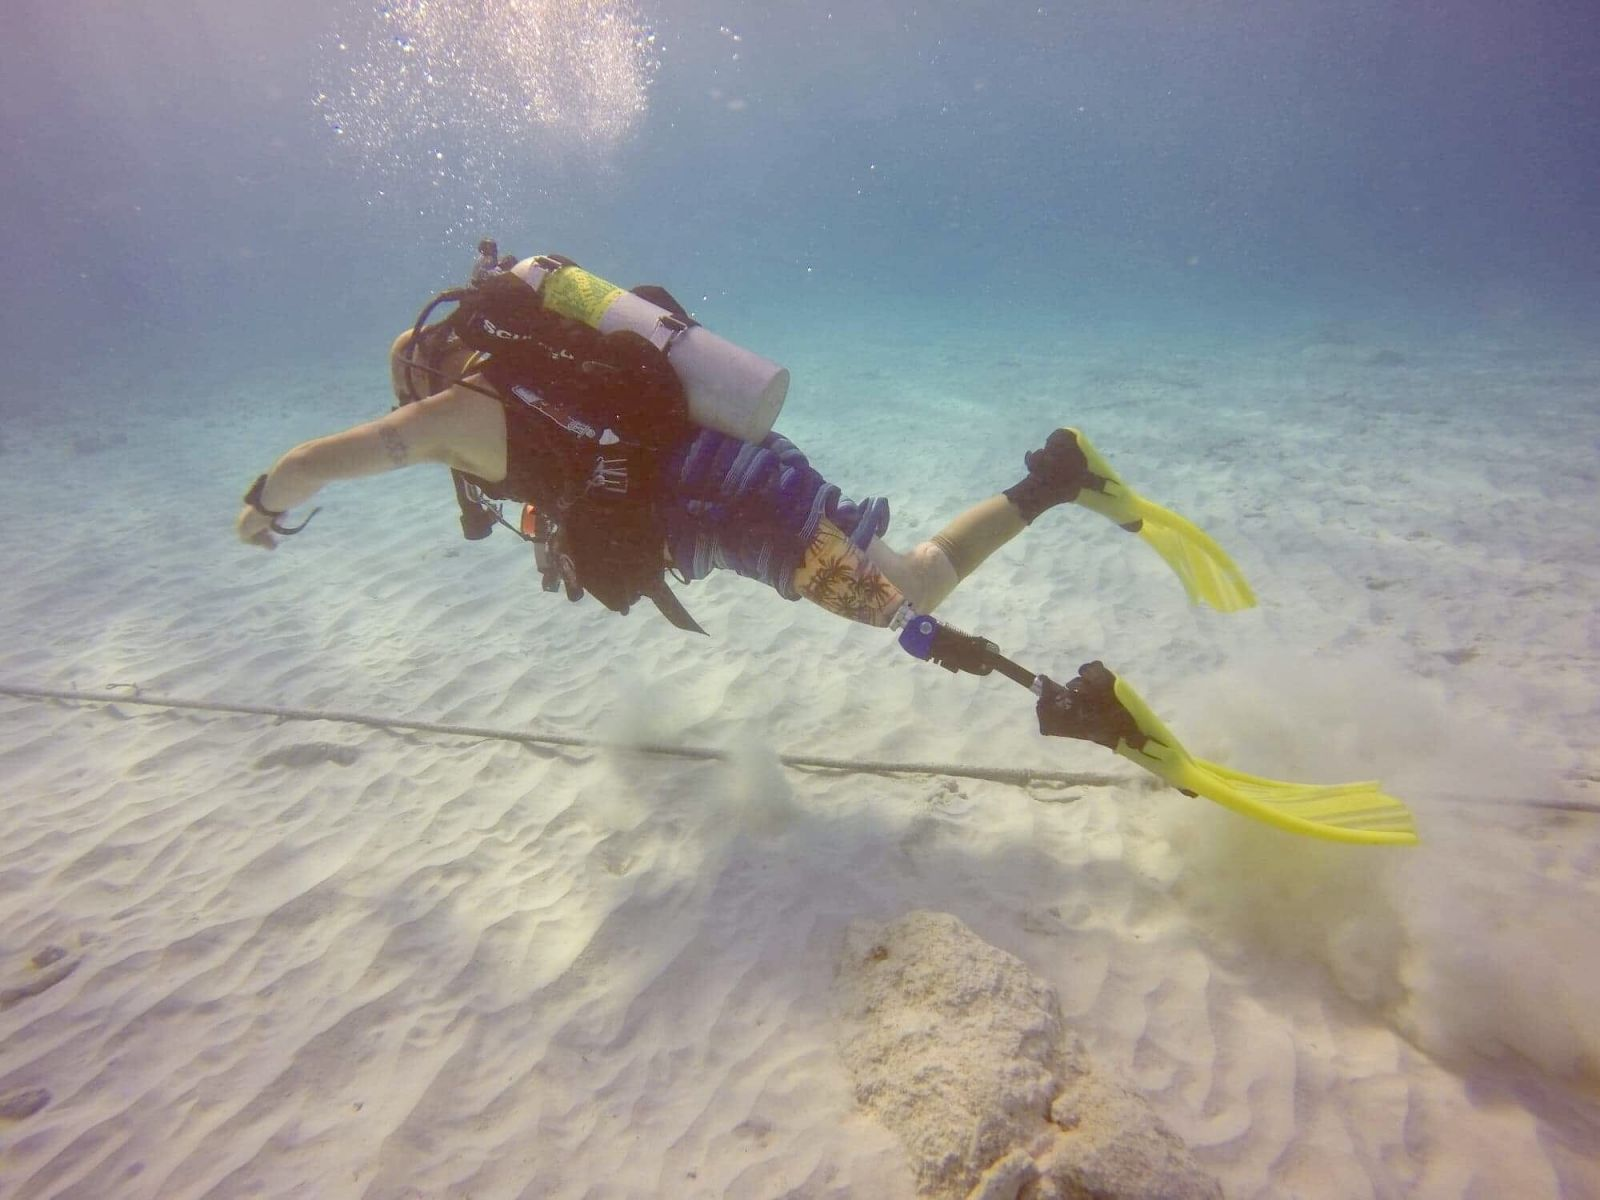 images/Amputee-Scuba-Diving.jpg